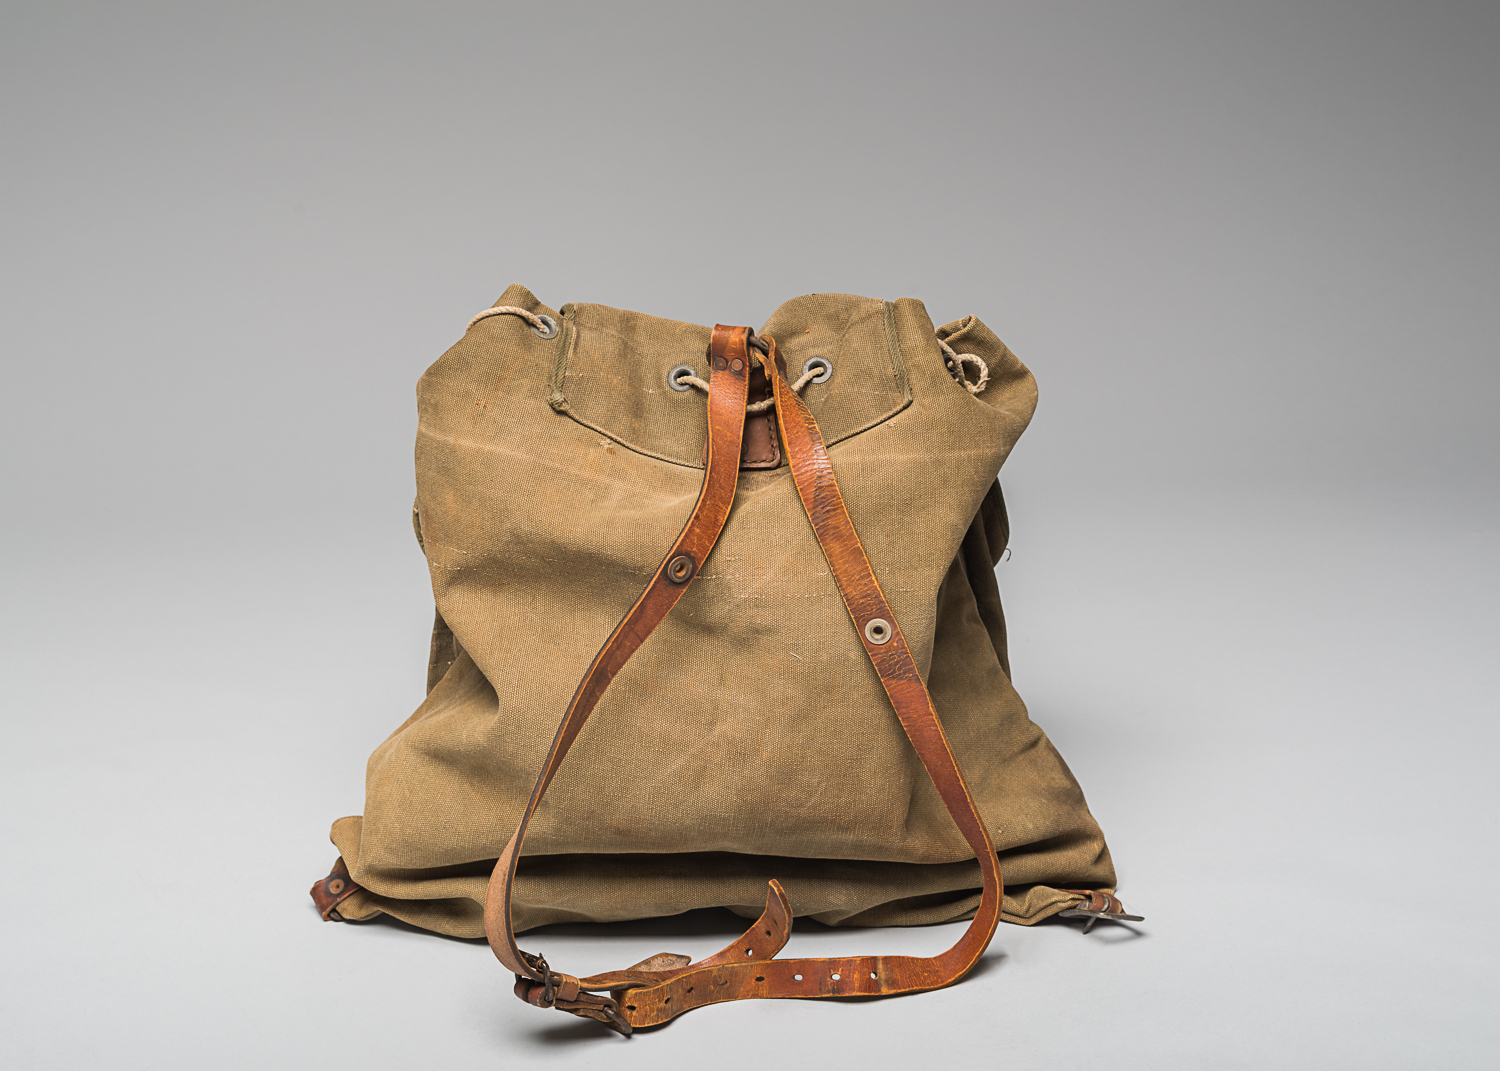 Helen, a friend of Joseph's, kept the knapsack after his death and learning of his family's death during the Holocaust. (Photo: Peter Berra)